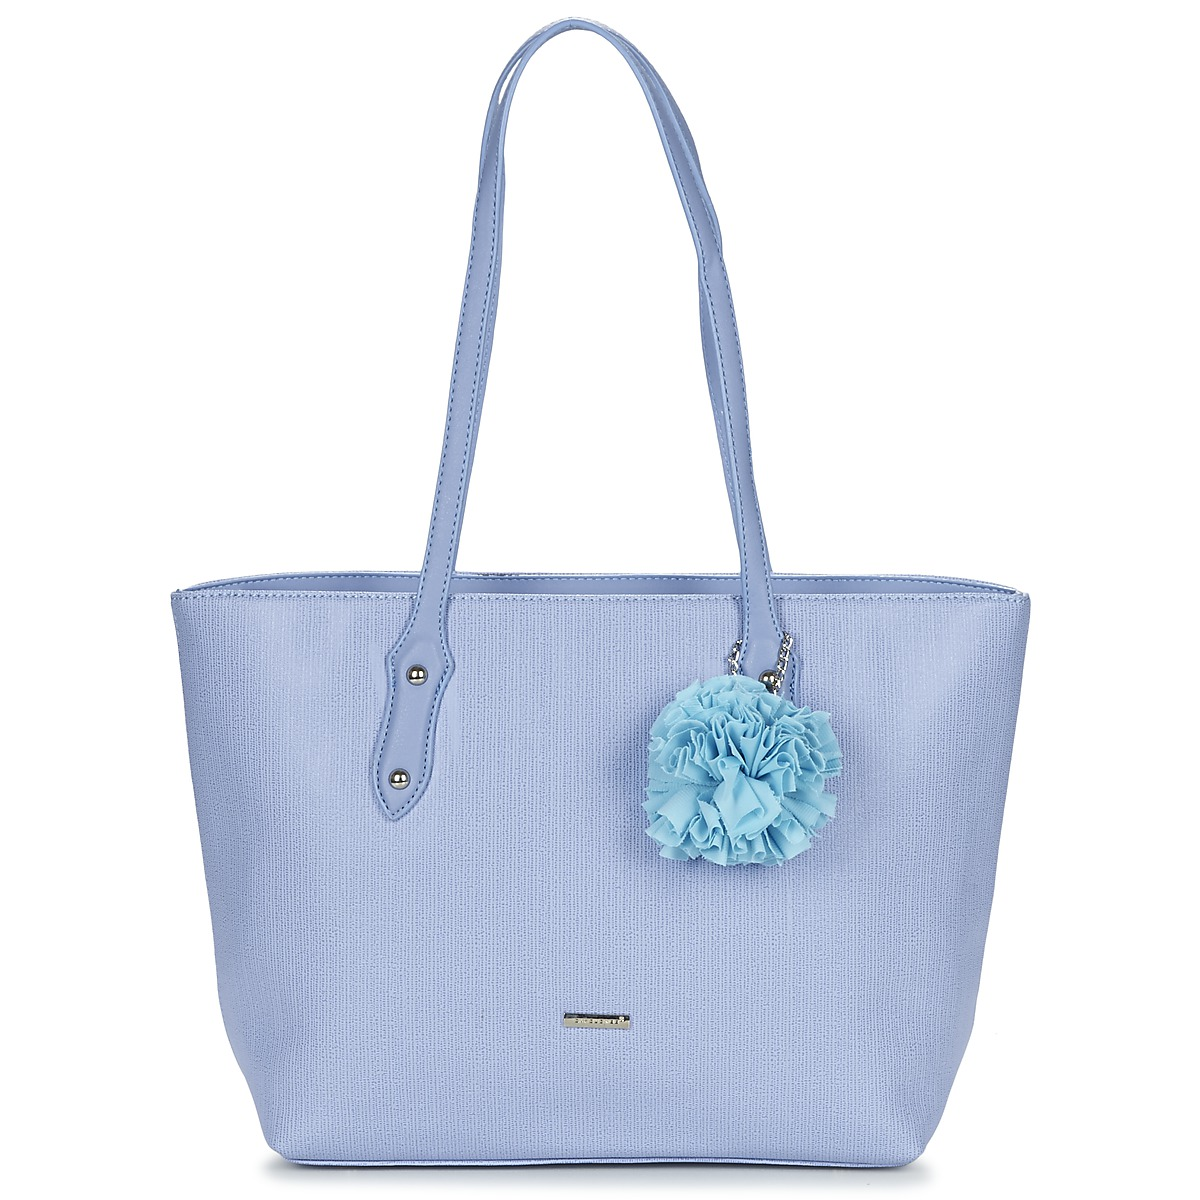 Borsa Shopping donna David Jones  GEVOLAKO  Blu